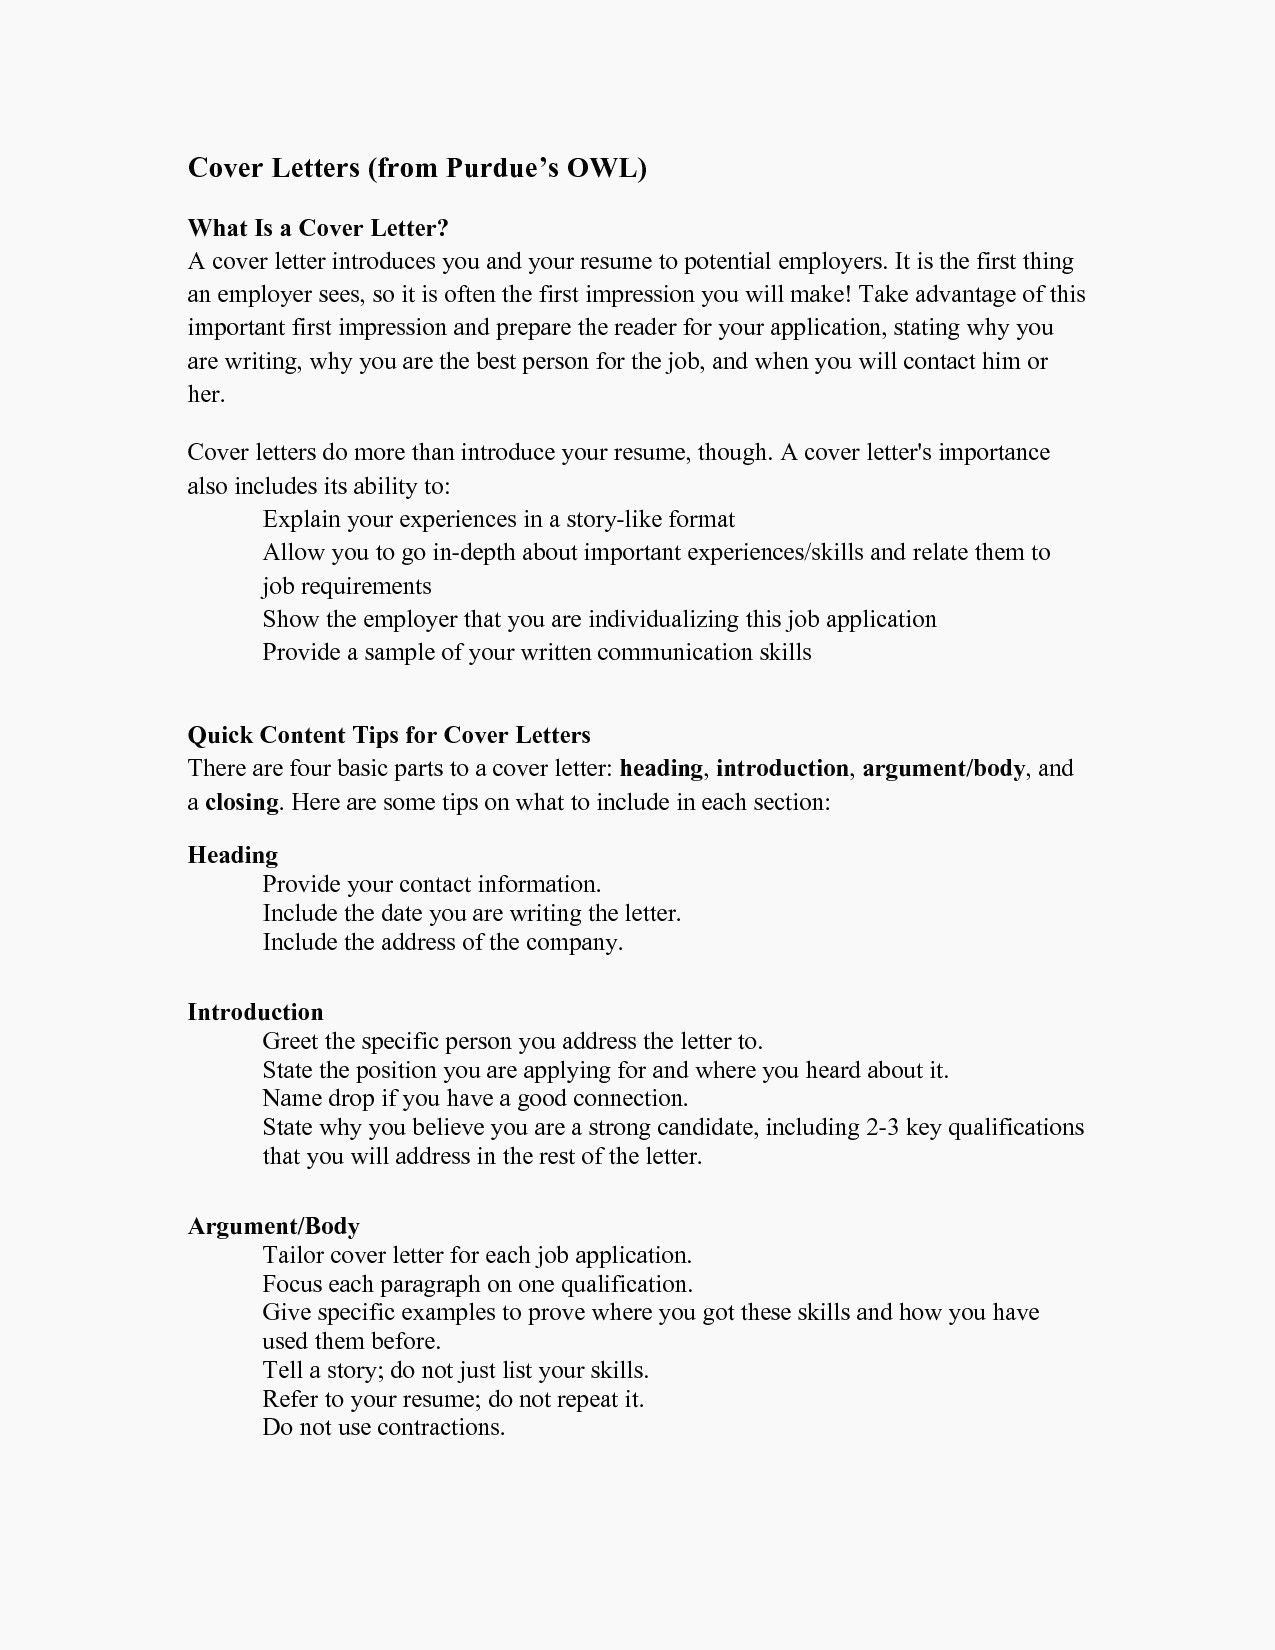 Resume Format Purdue Owl Lettering Cover Letter Template